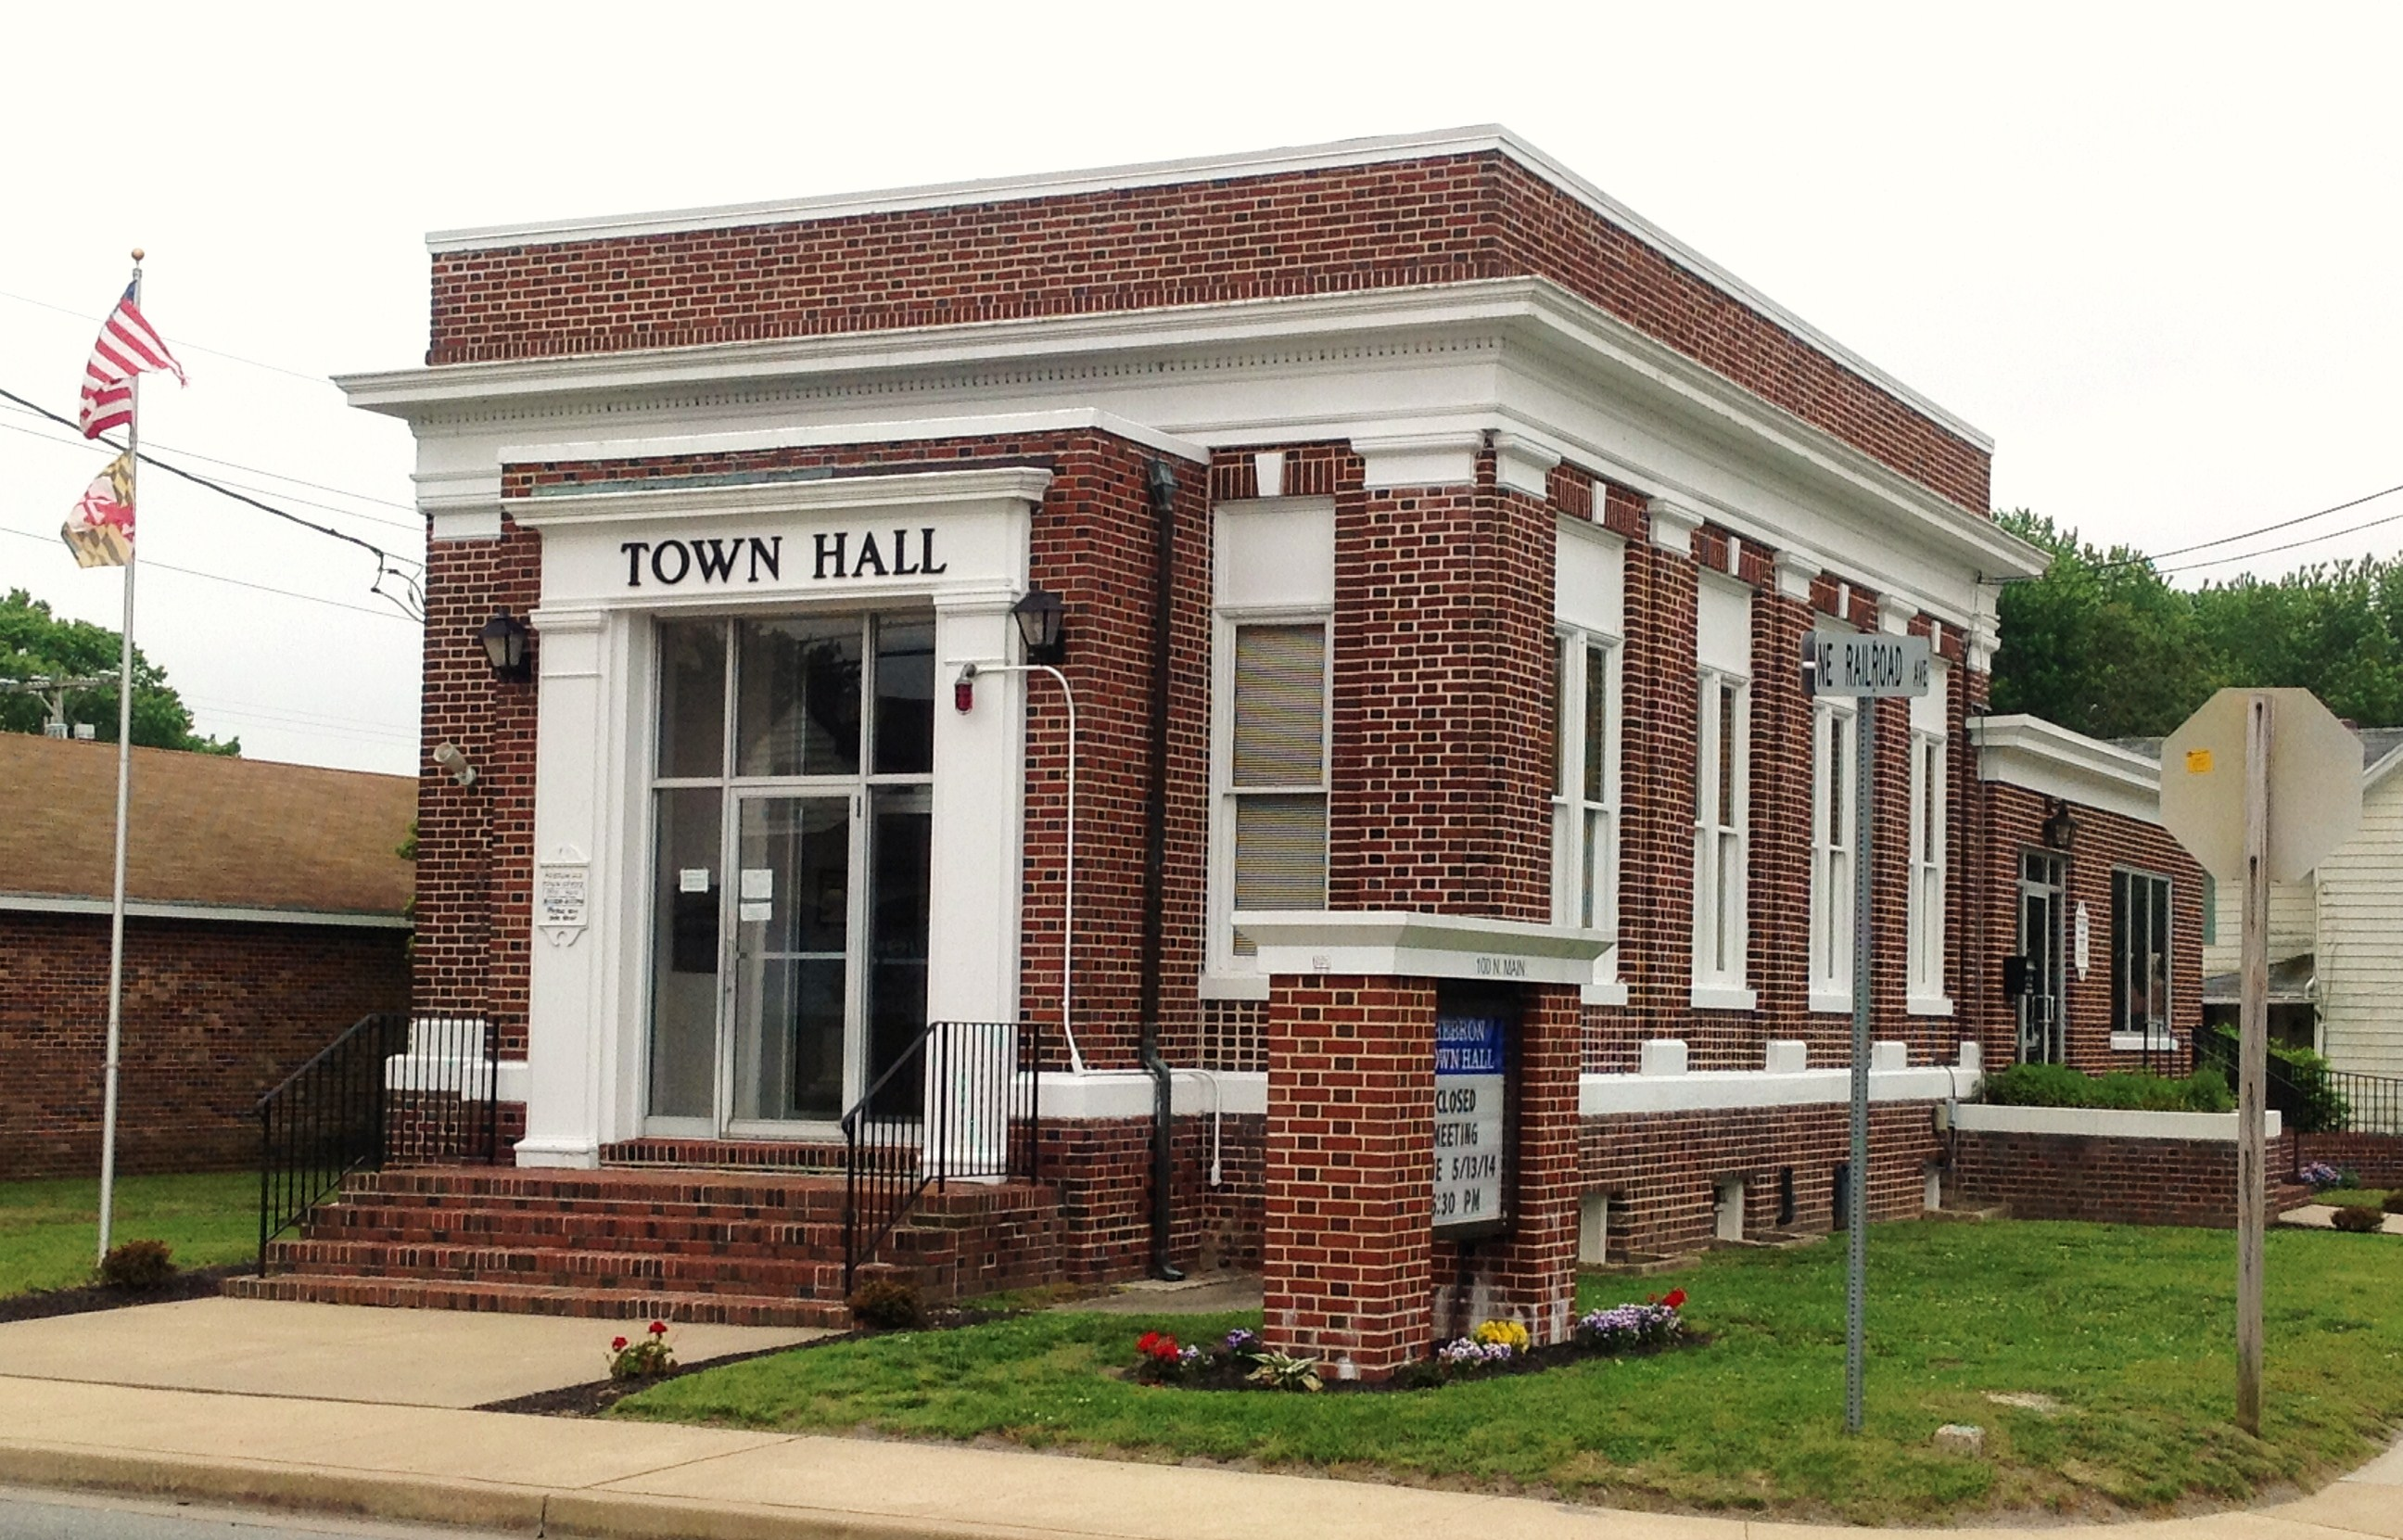 Town Hall in Hebron MD